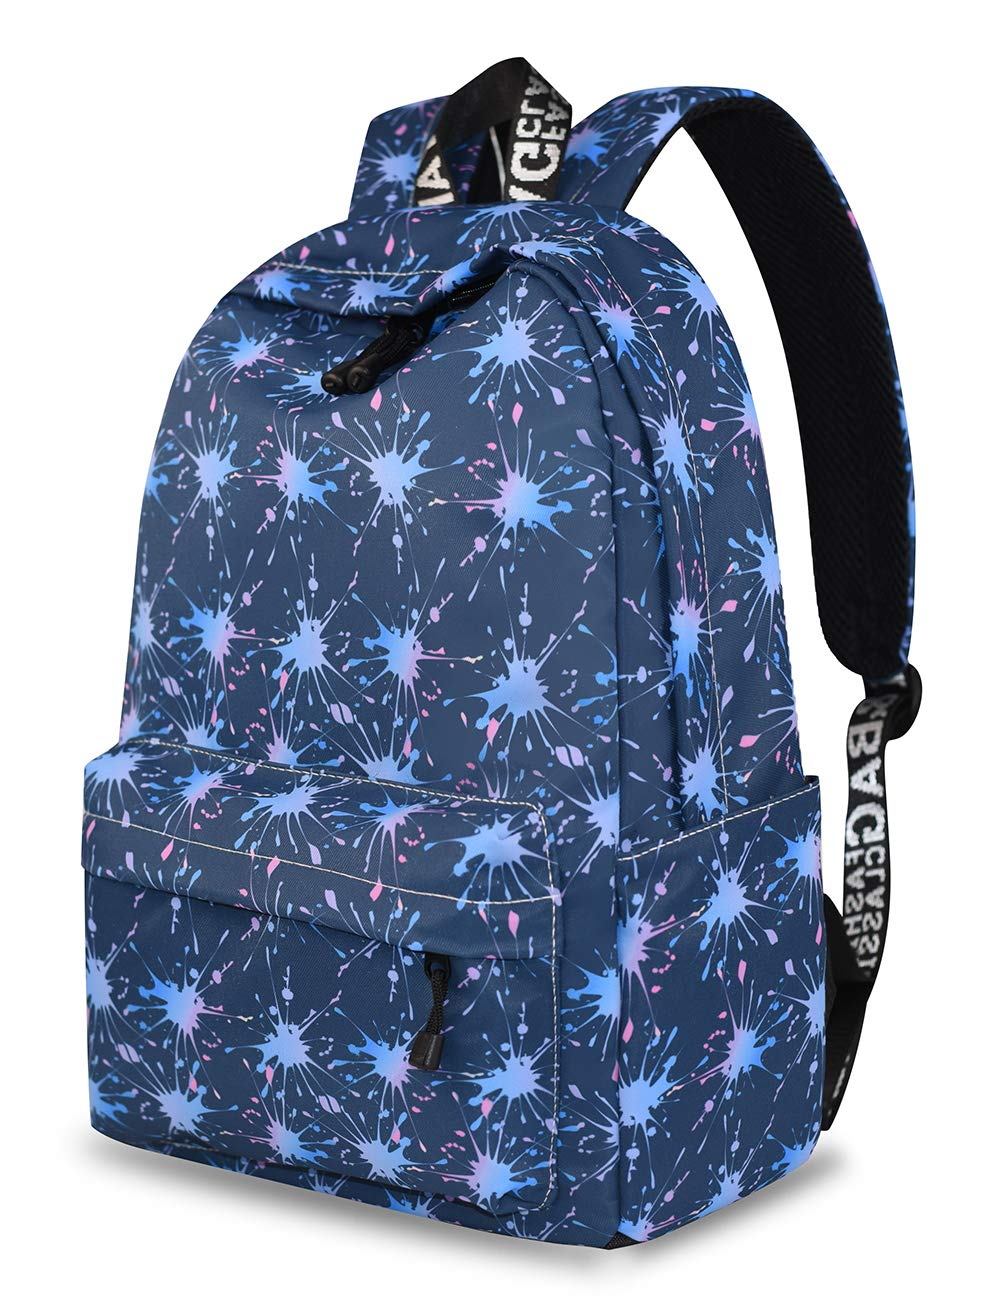 878fbccf4c2 Yanaier School Bookbags for Girls Cactus Waterproof Lightweight Canvas  Backpack for Girls Teenage Daypack Casual Travel Bag for Women Navy